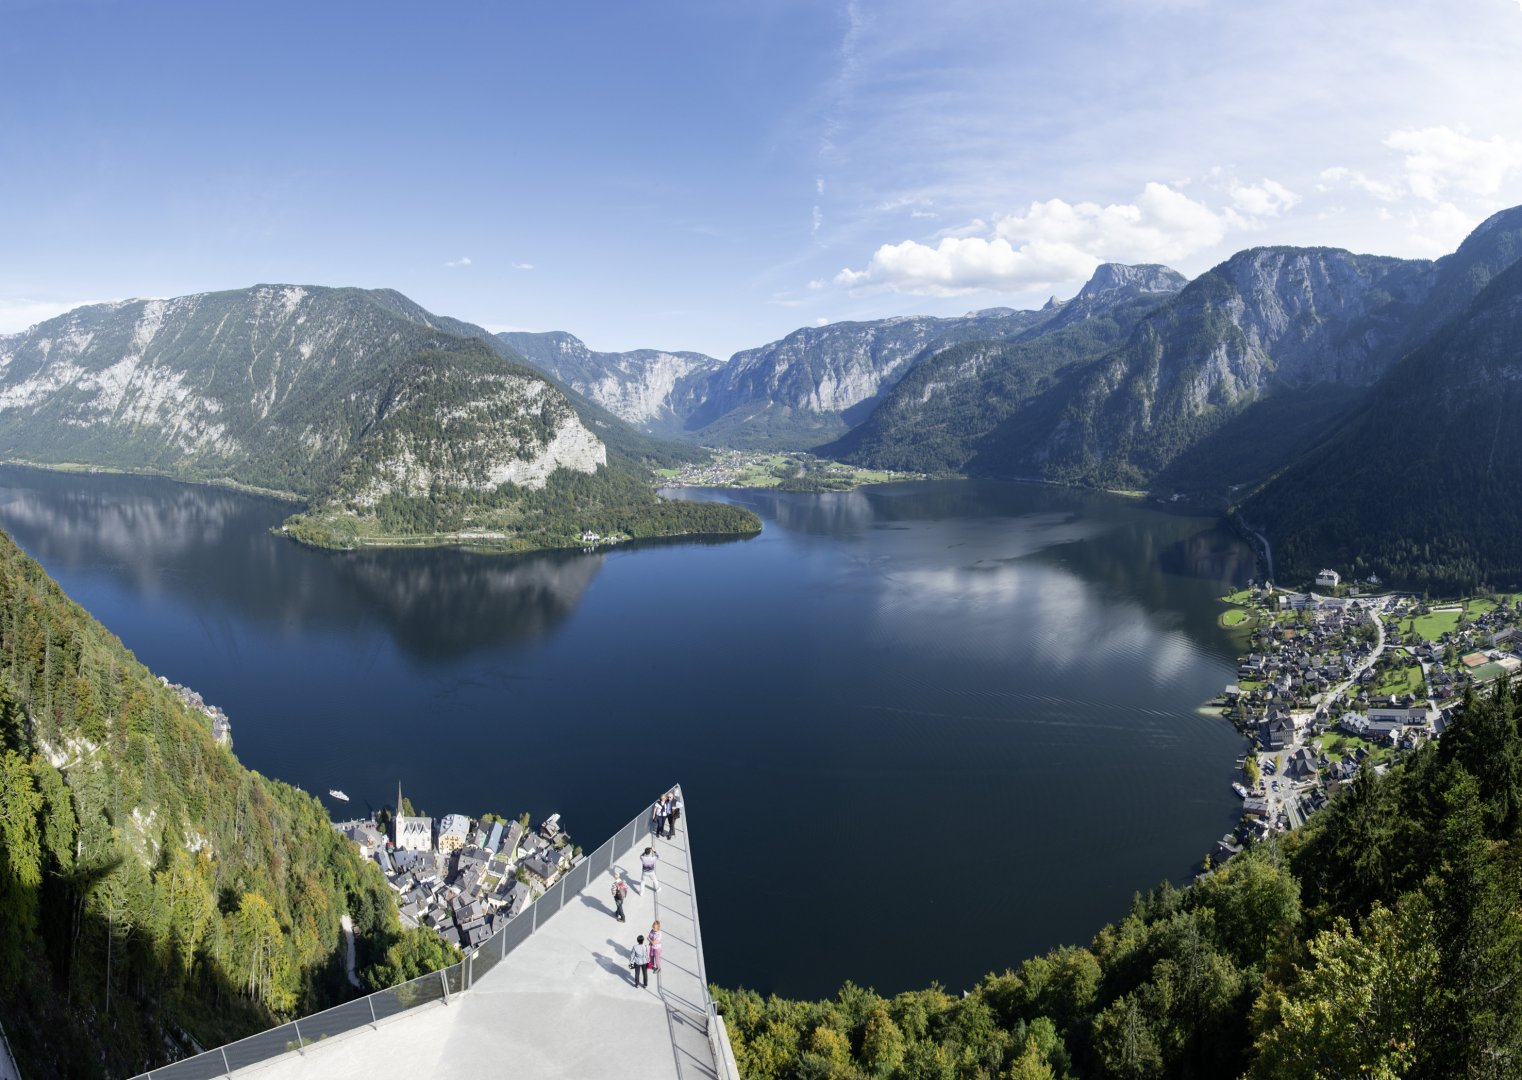 Our absolute VIP Tour. Experience Hallstatt like no other. See what others don't get to see.